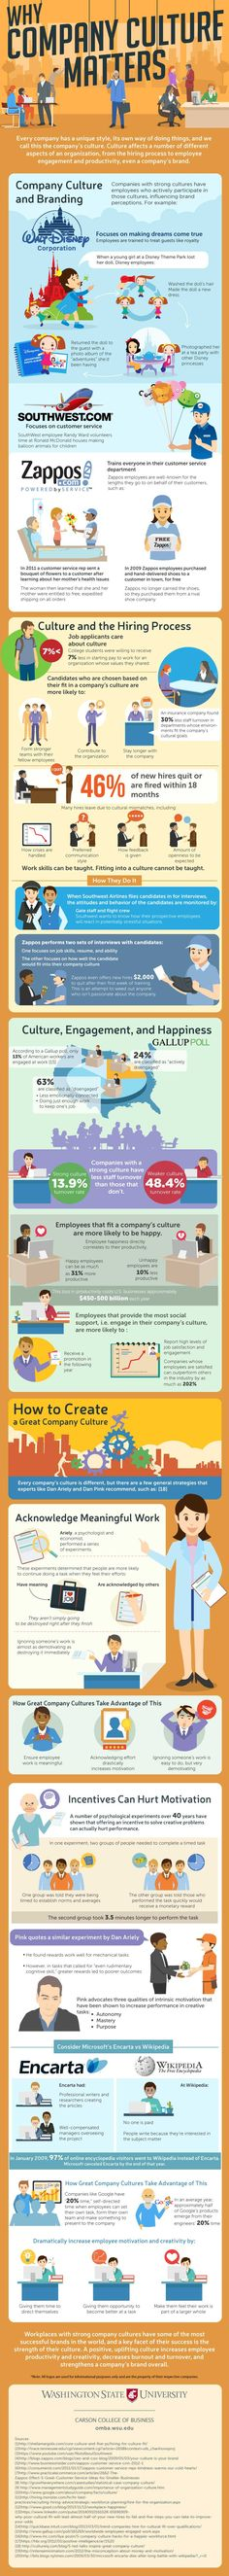 Why Company Culture Matters #infographics #infographic #socialmedia #visual